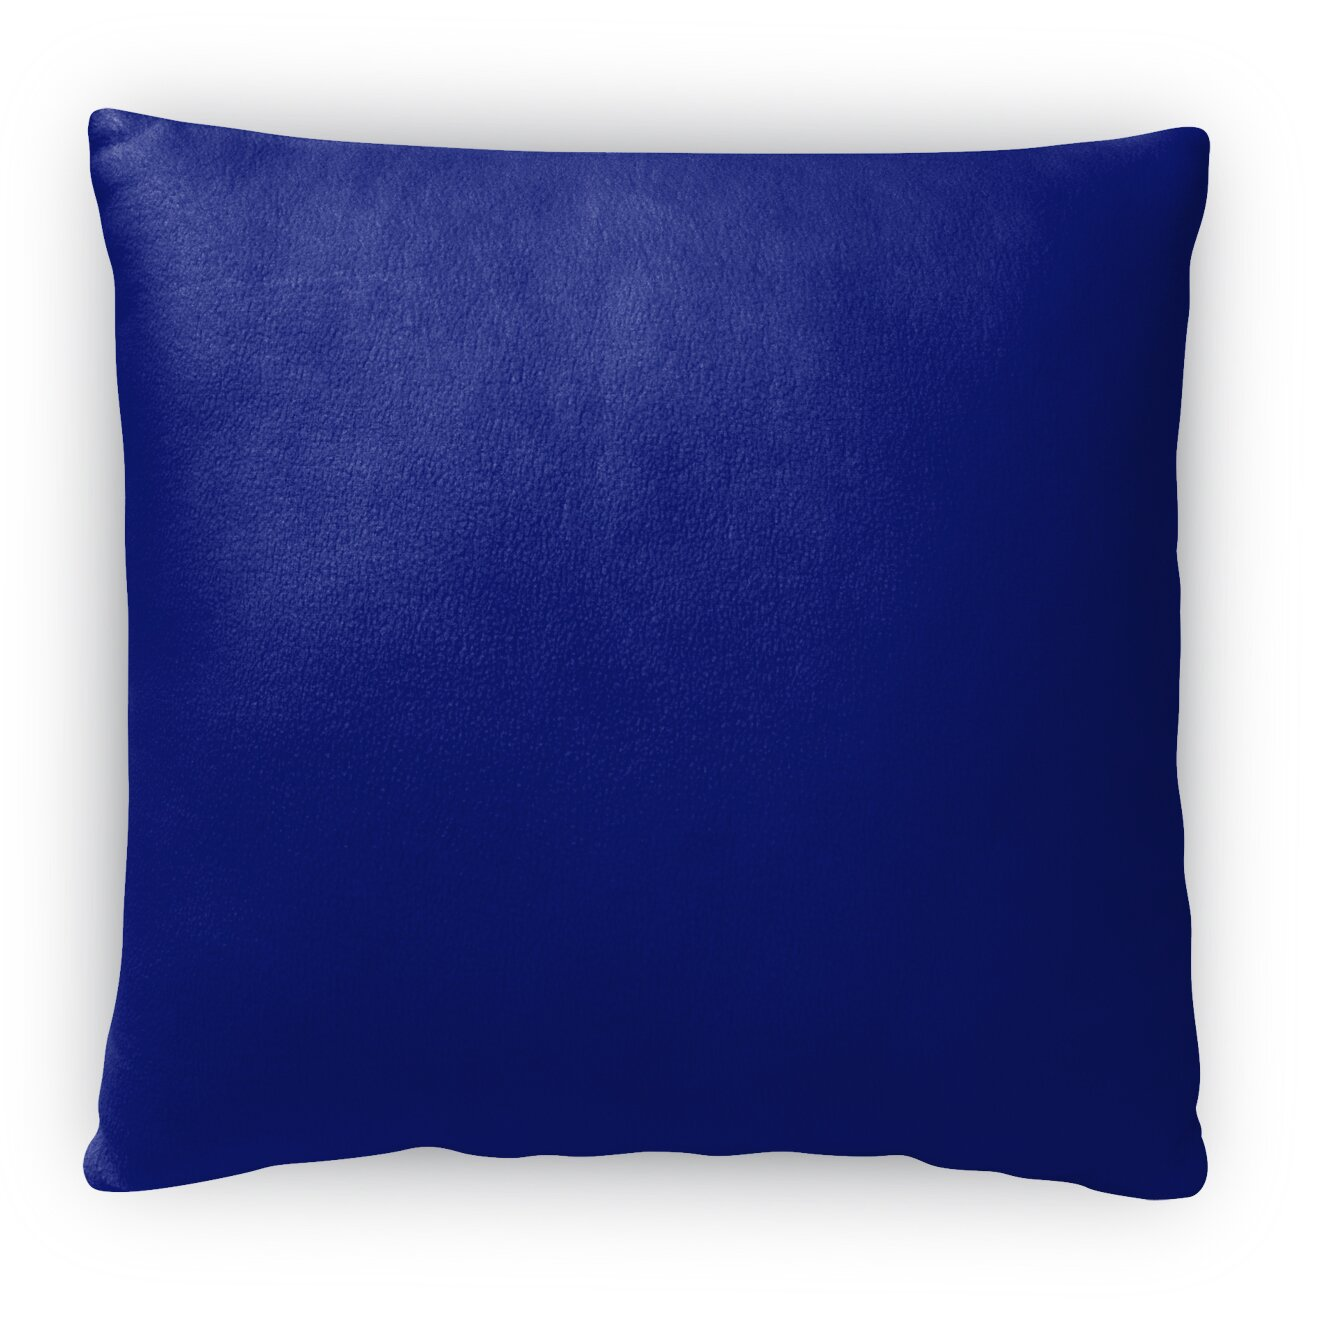 Fun Throw Pillows For Couch : Kavka Splash of Fun Fleece Throw Pillow Wayfair